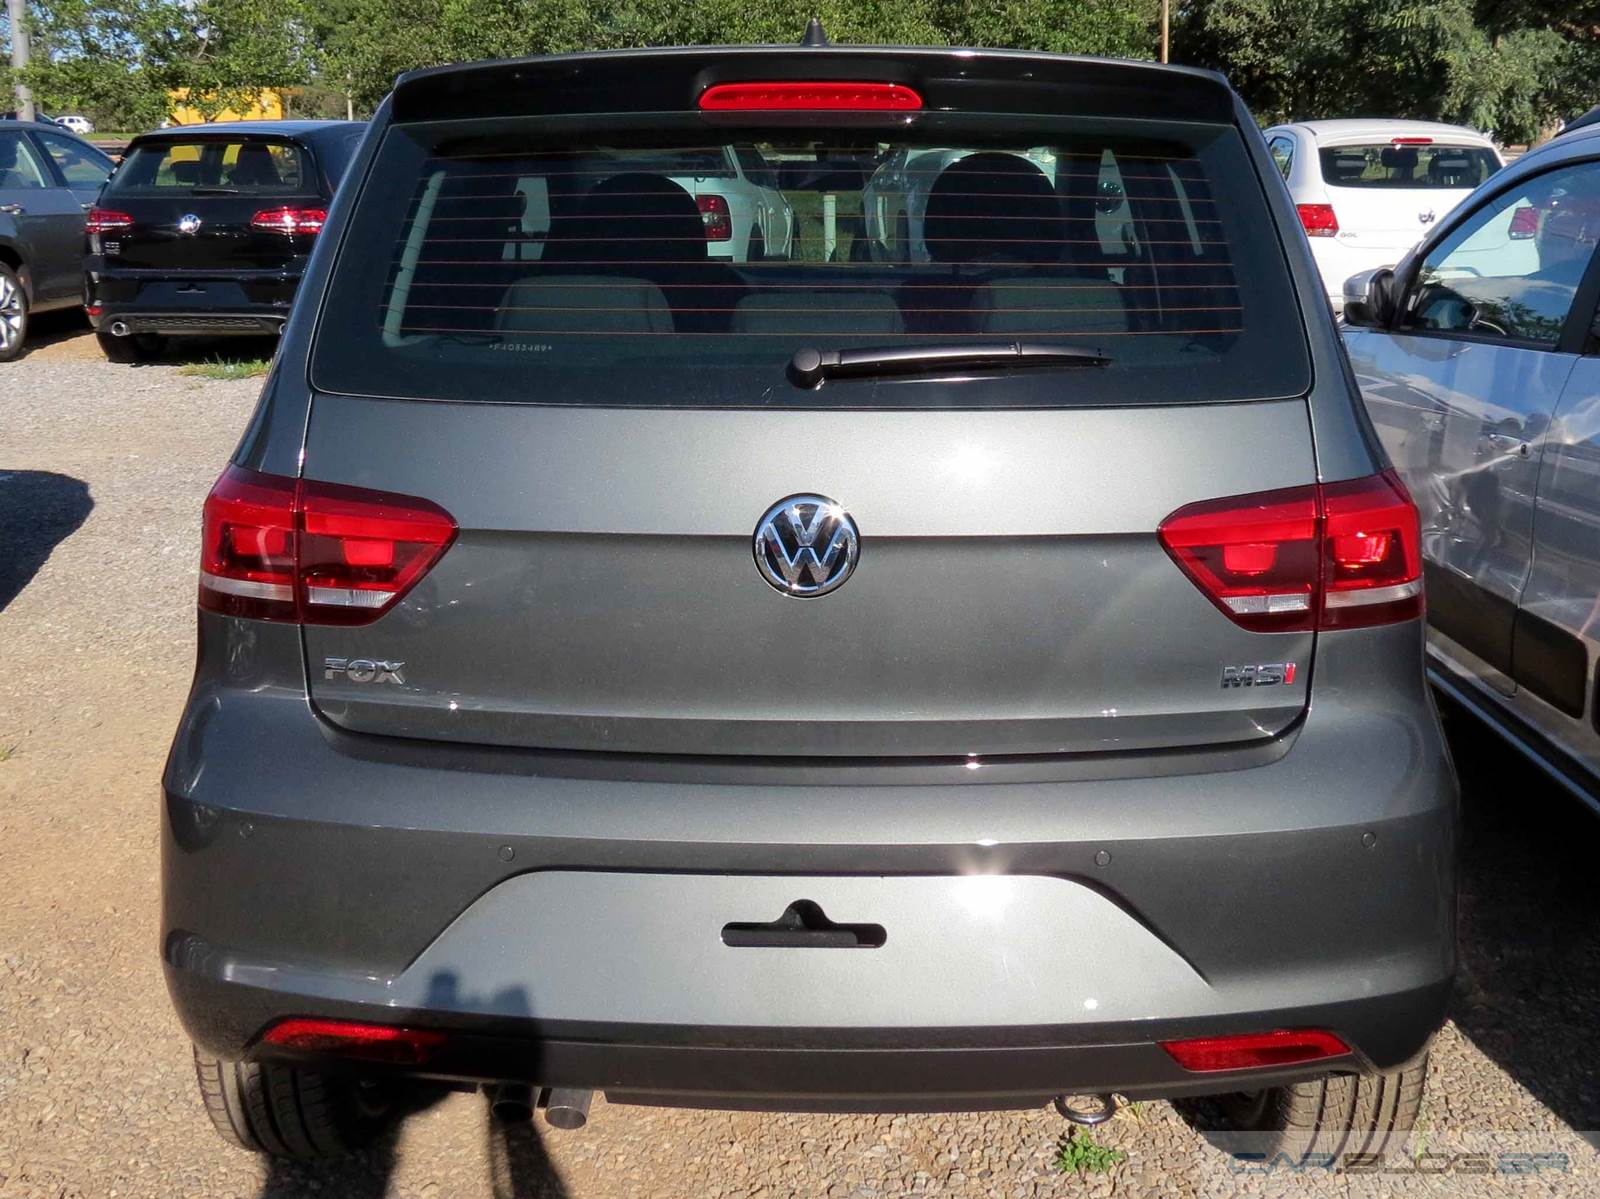 VW Fox Highline 2015 Cinza Quartzo